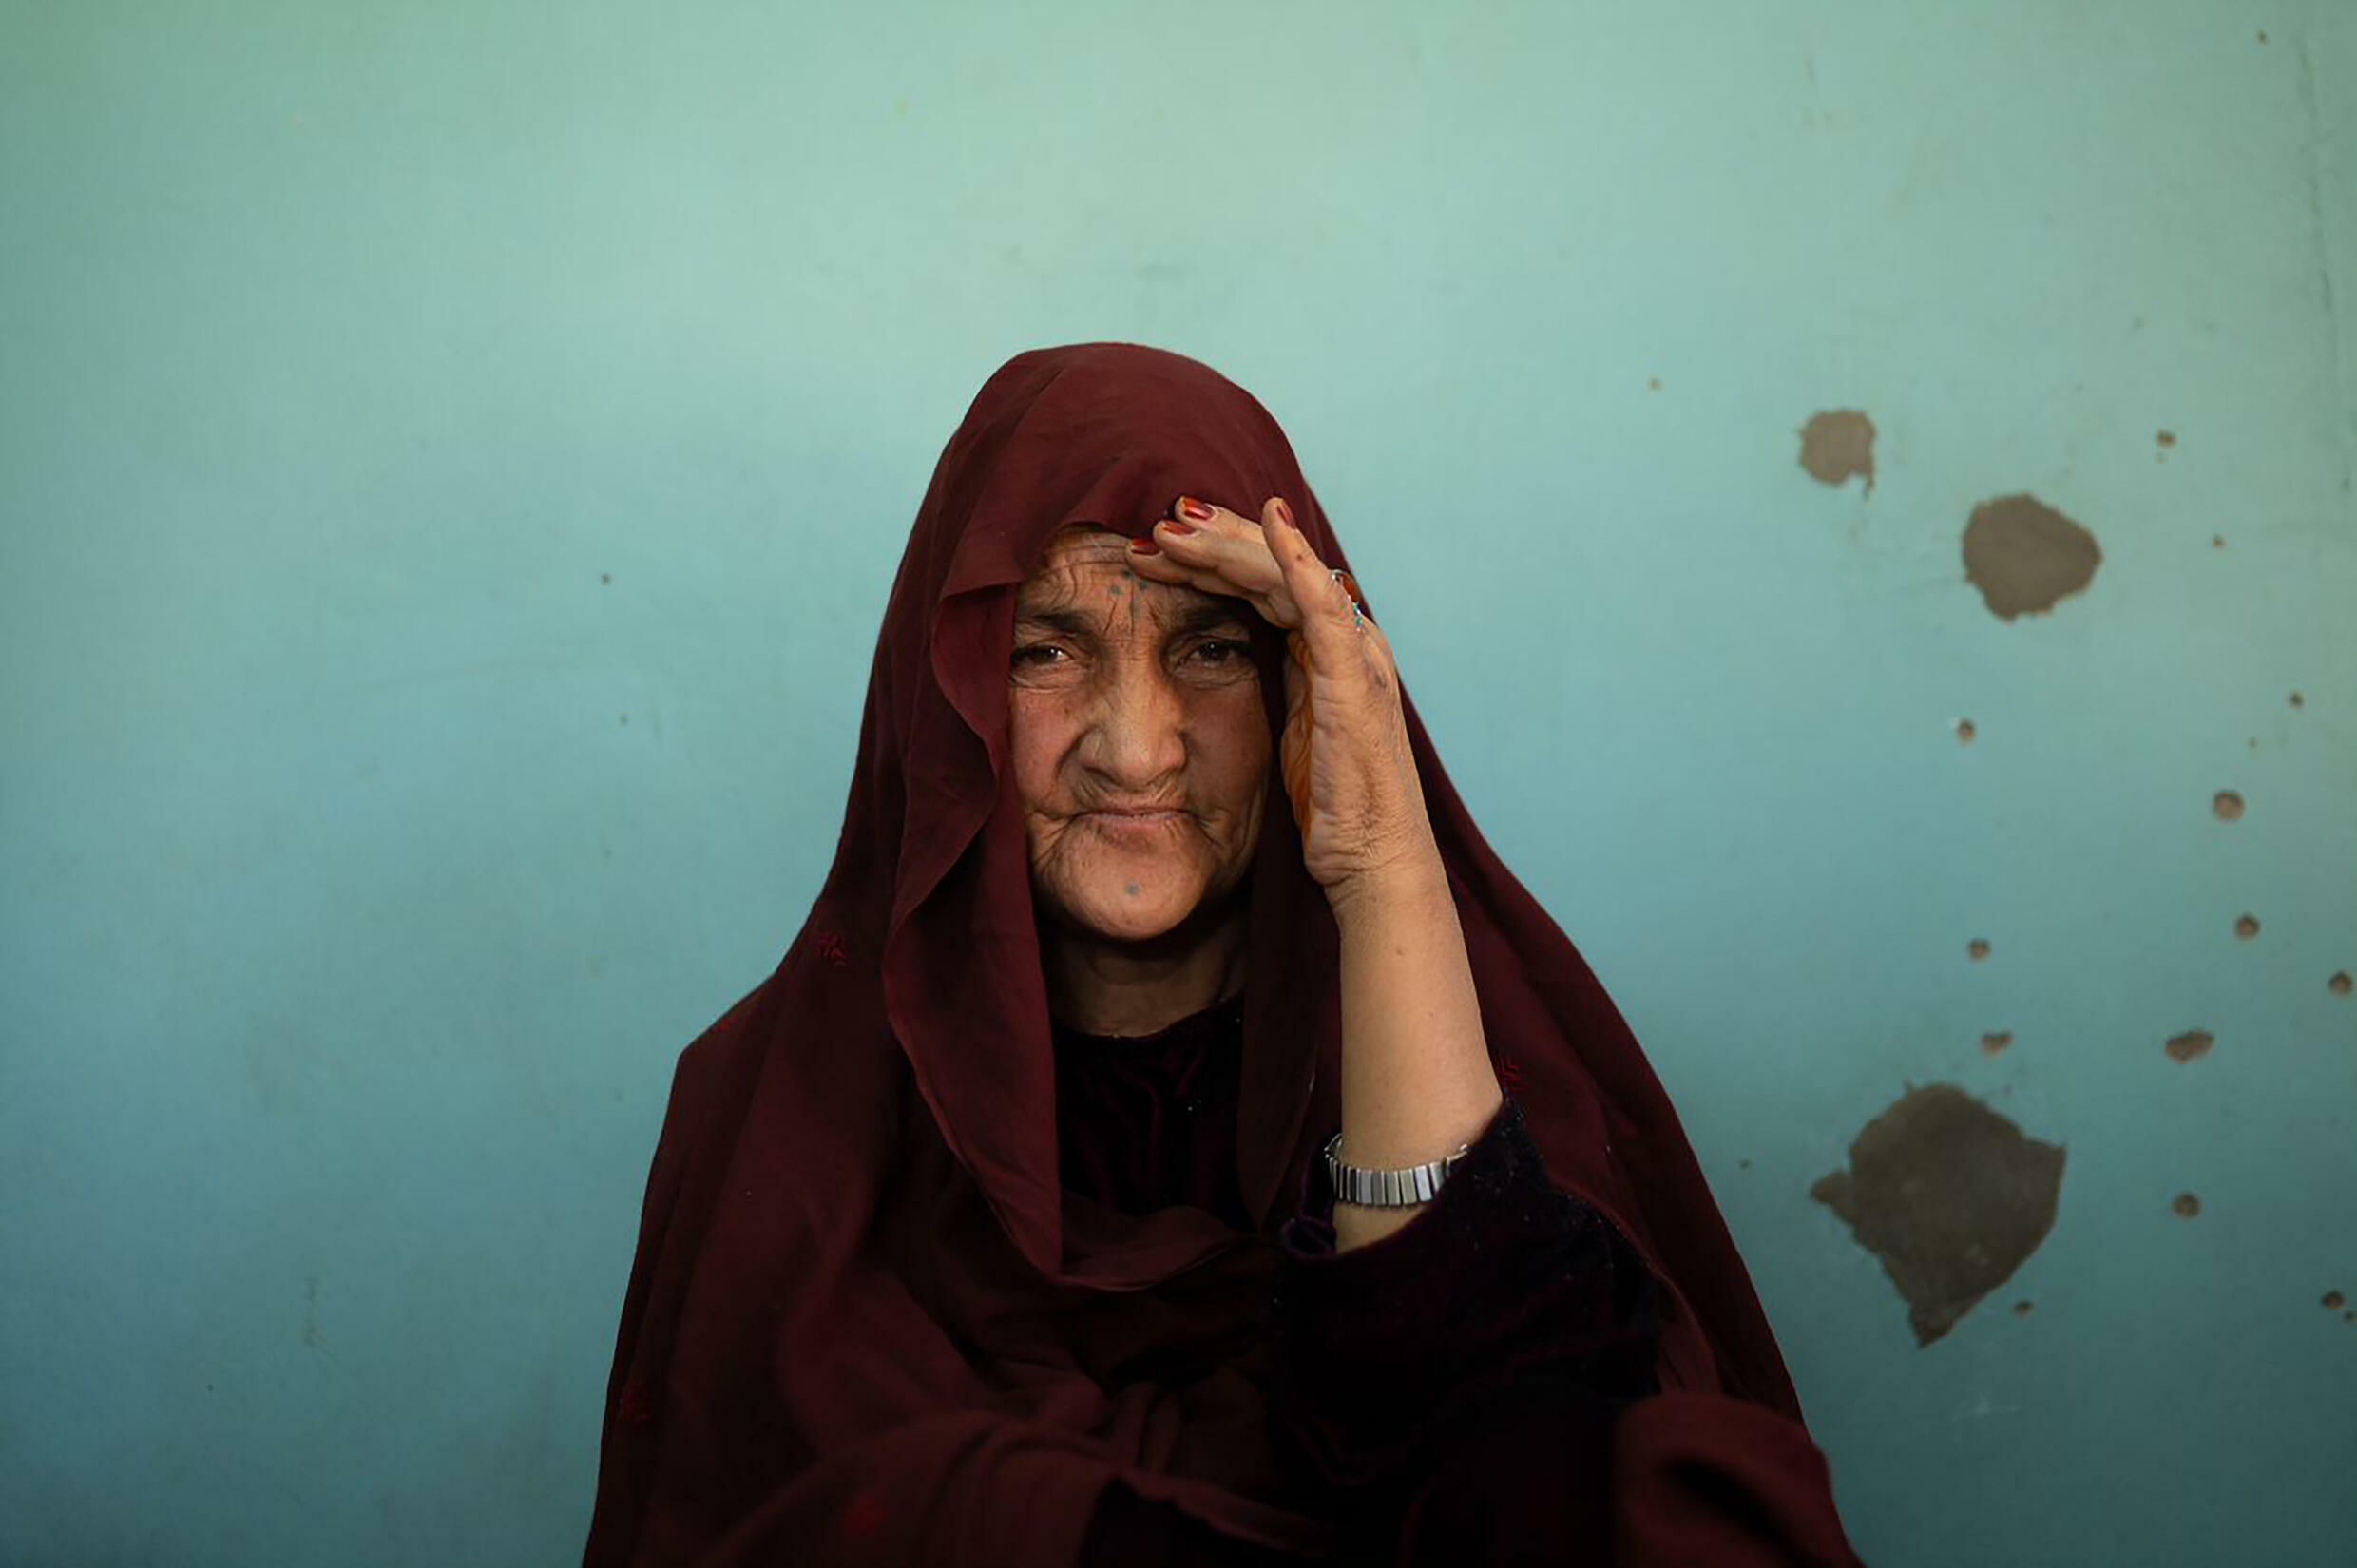 In deeply conservative Afghanistan, even in areas under the control of the previous US-backed governments, women and men were expected to be treated by a health professional of the same sex